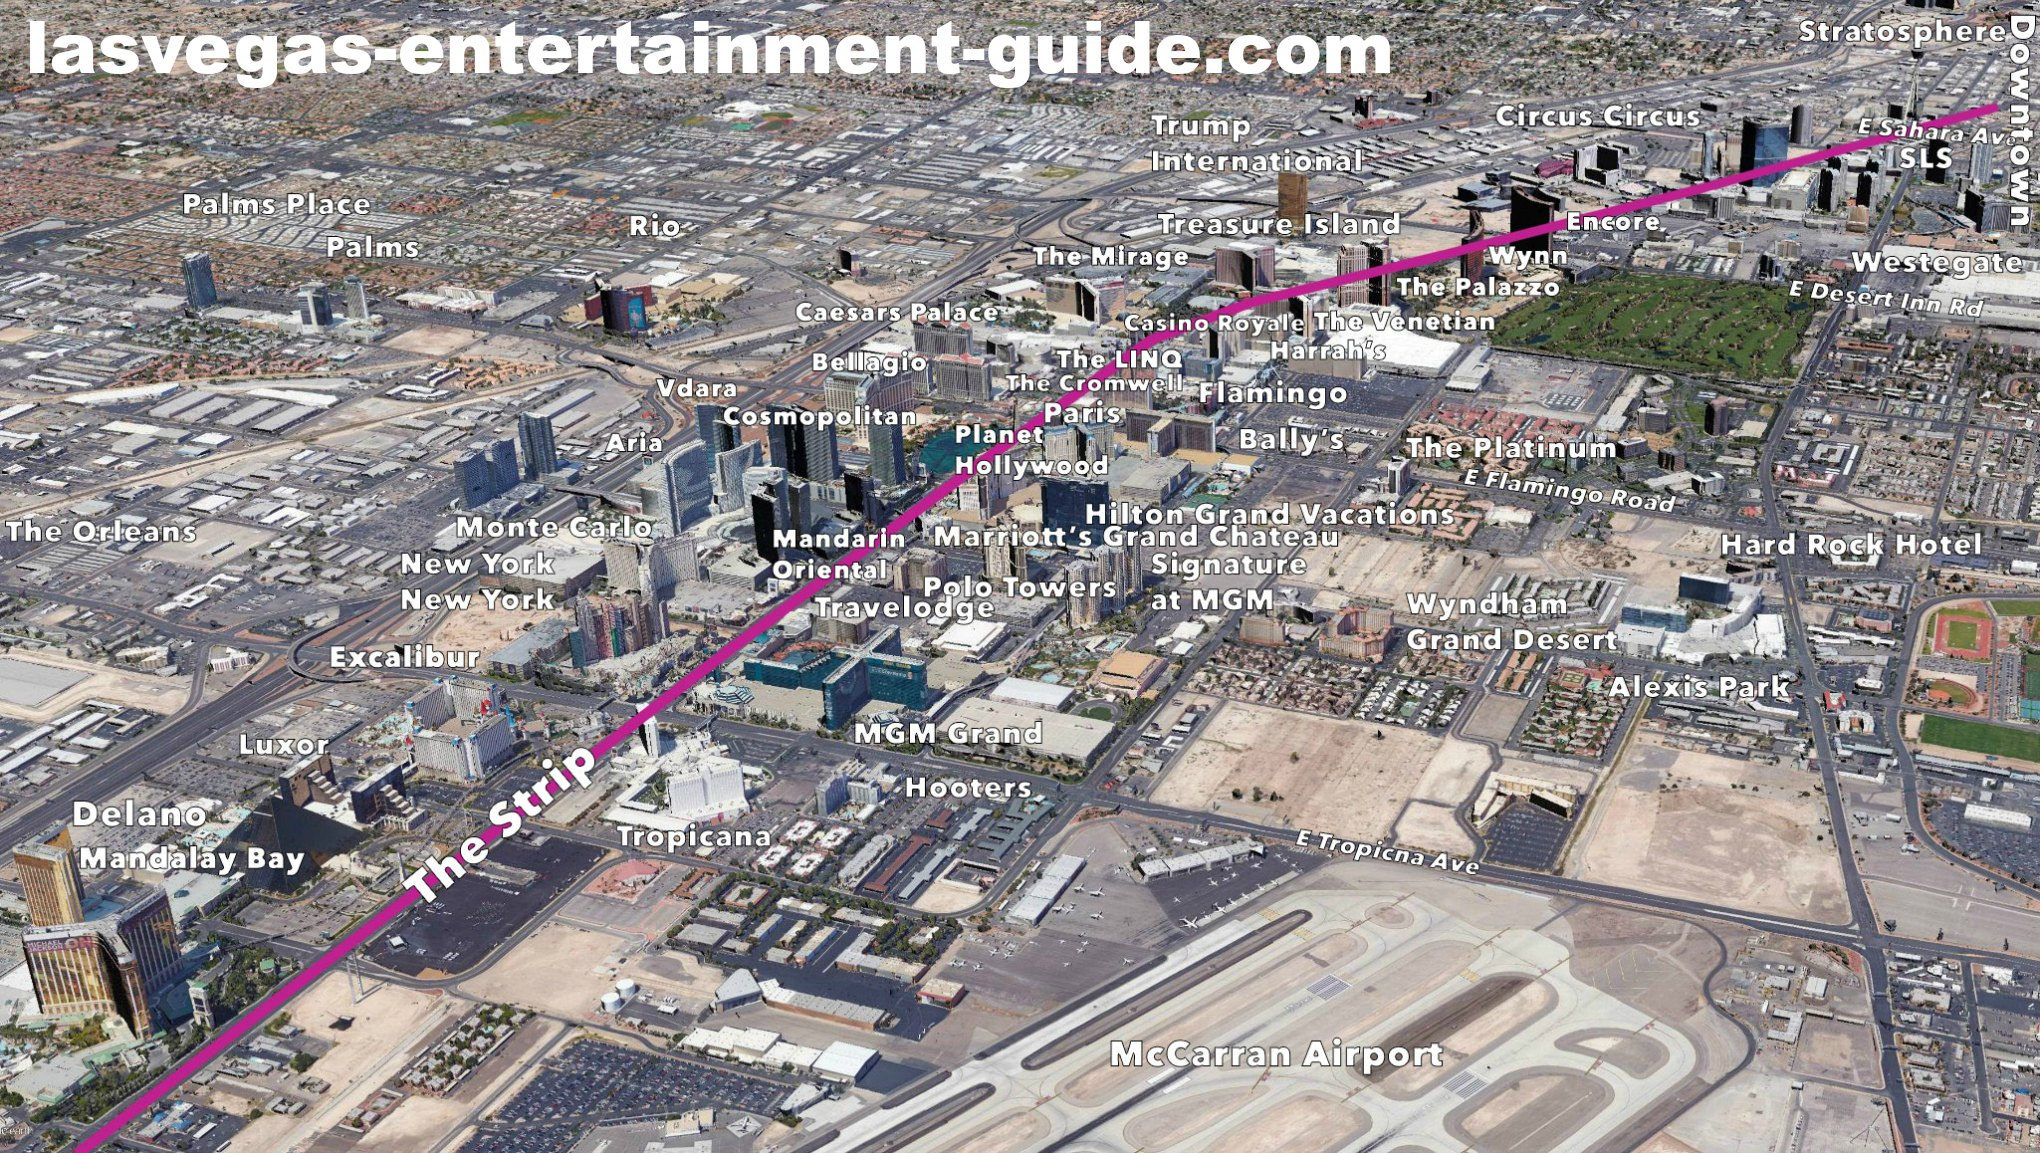 Las vegas strip map distance